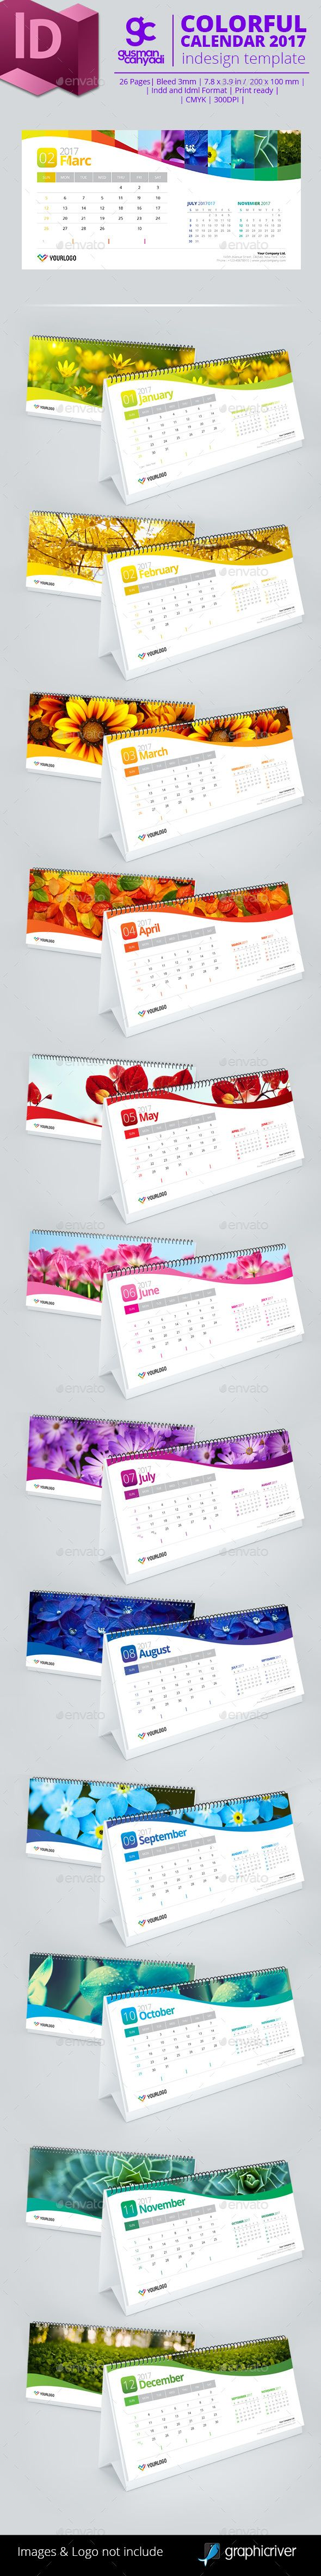 Colorful Calendar 2017 Template InDesign INDD. Download here: https://graphicriver.net/item/colorful-calendar-2017/16110119?ref=ksioks